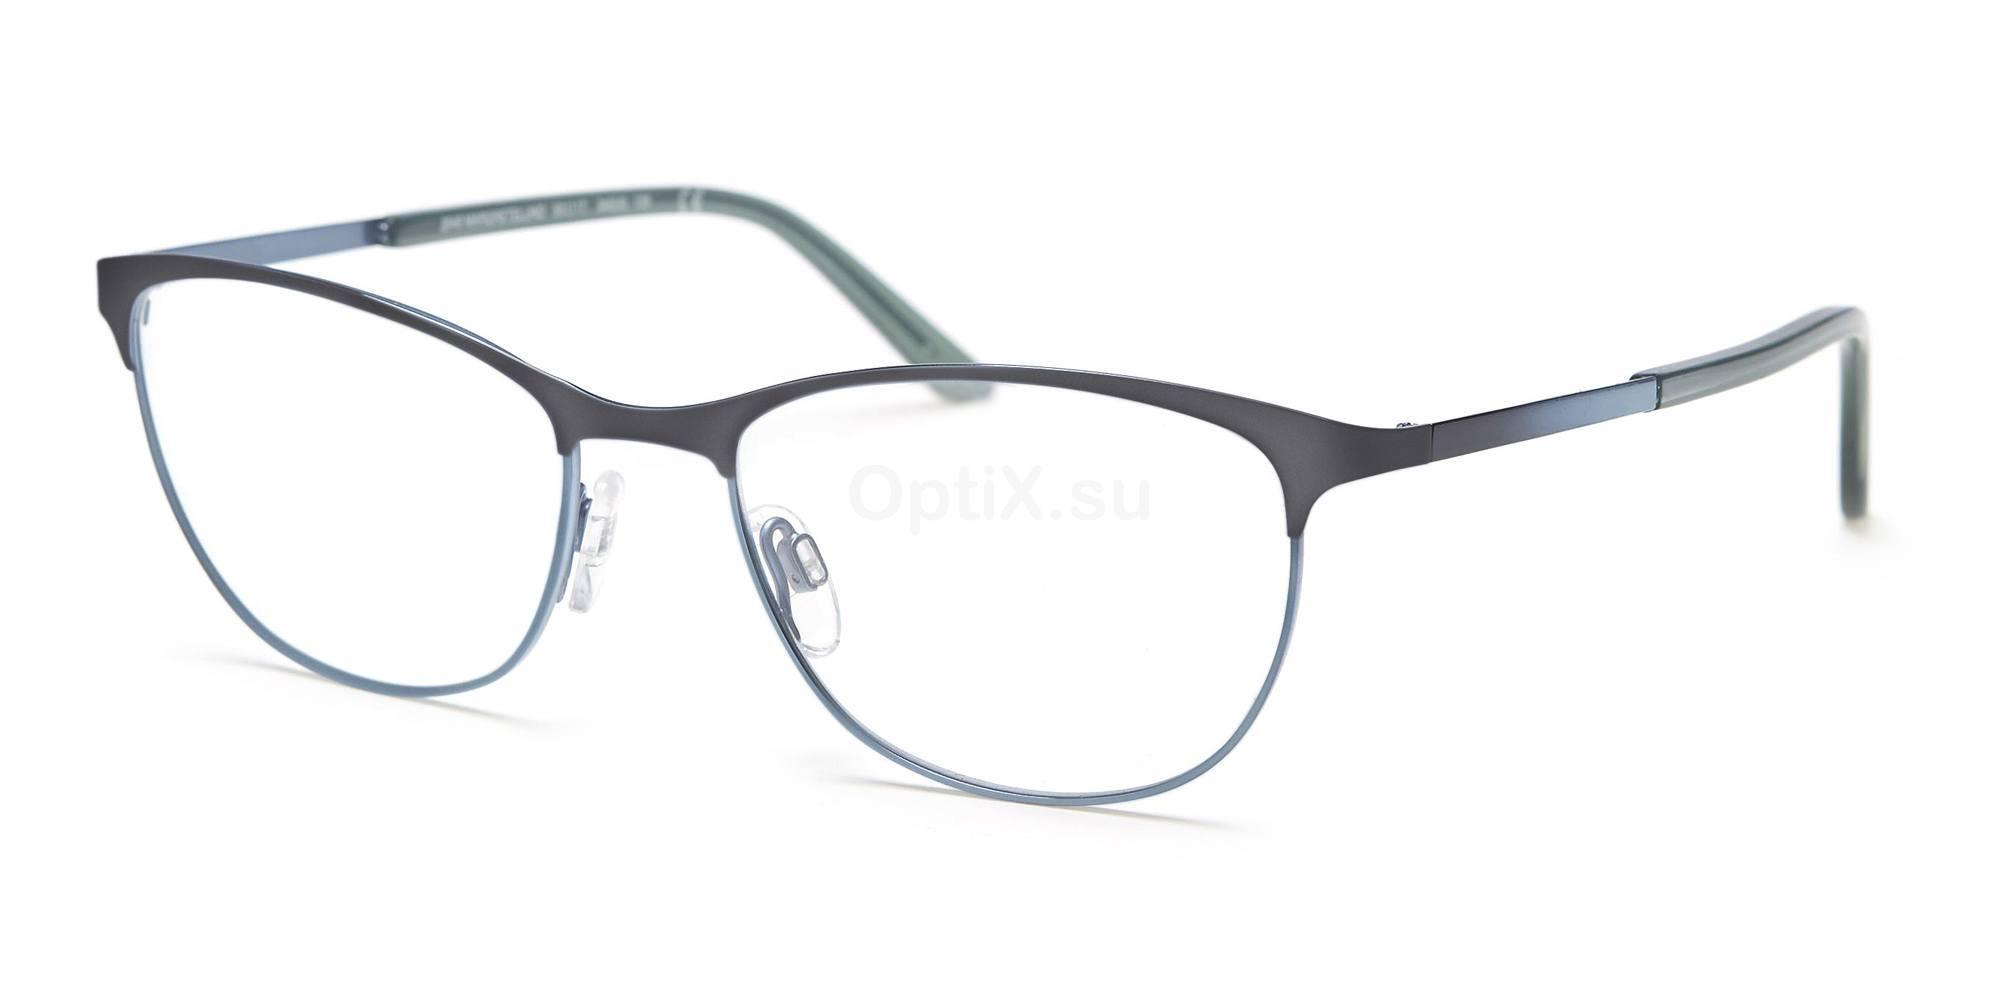 340 2649 MARGRETELUND Glasses, Skaga